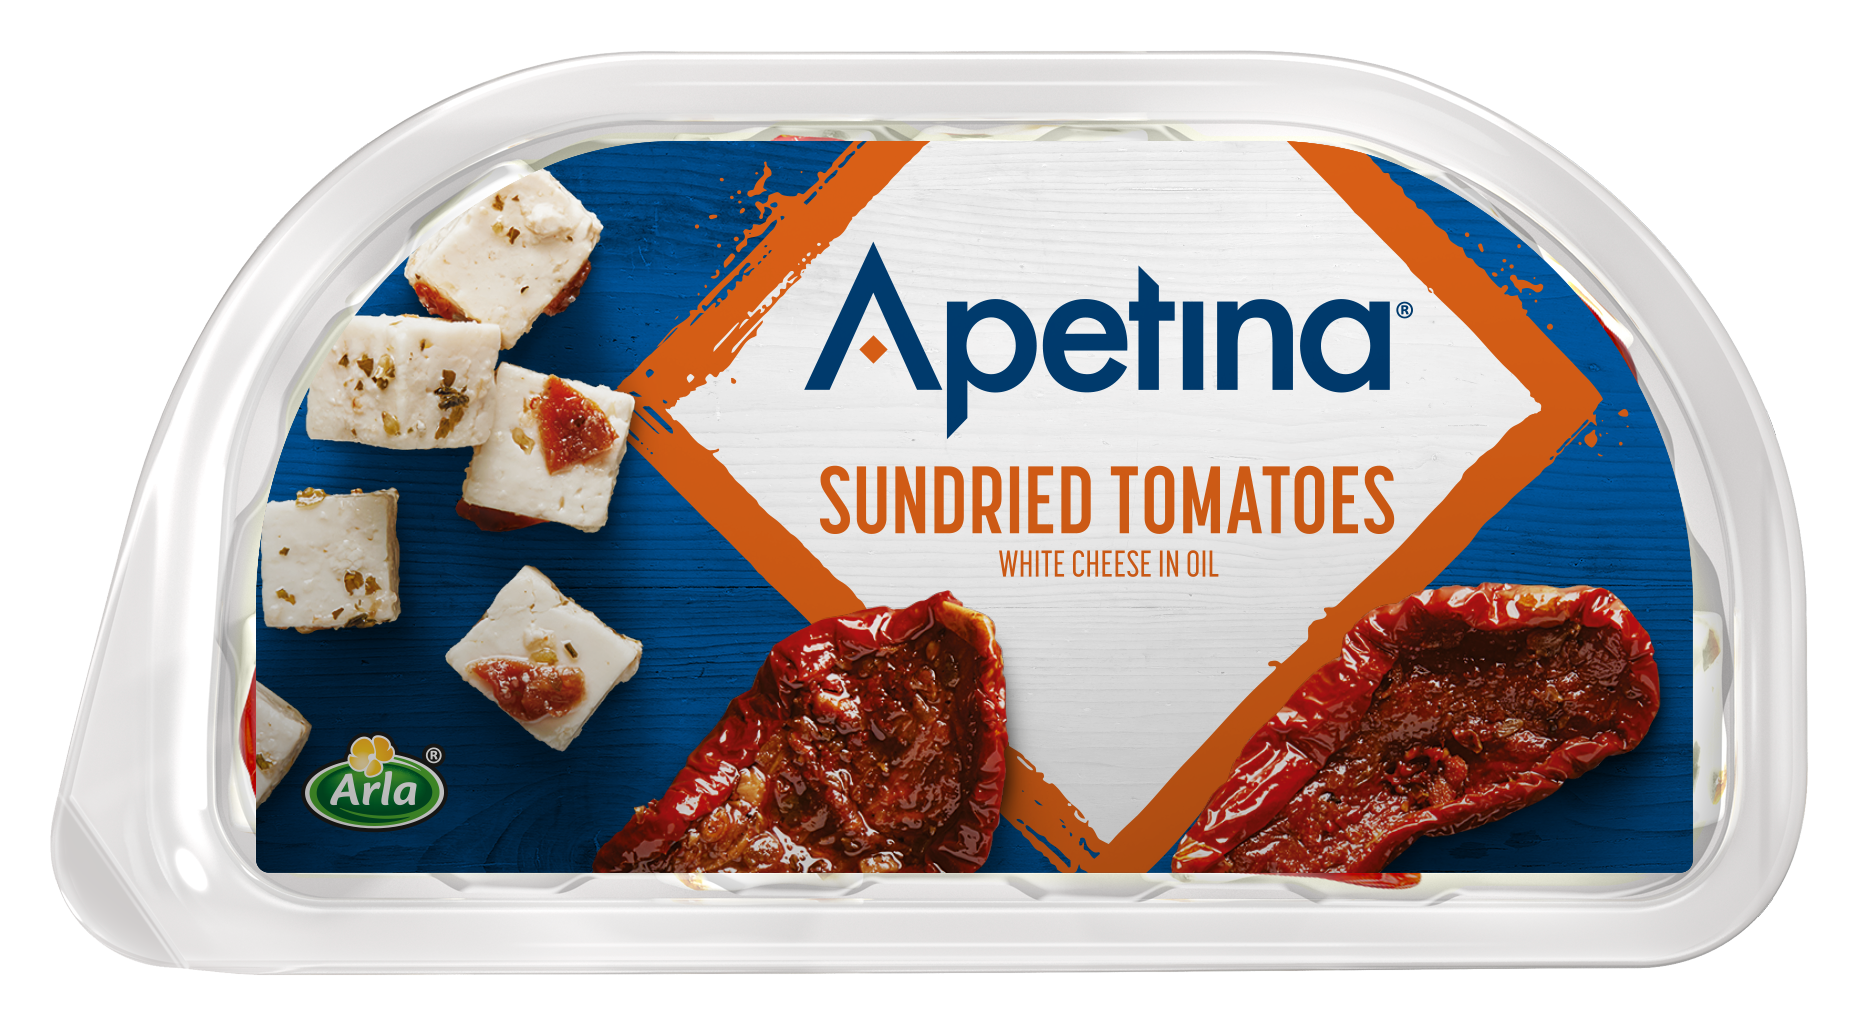 Apetina® Apetina white cheese cubes in oil Sundried Tomatoes 100 g